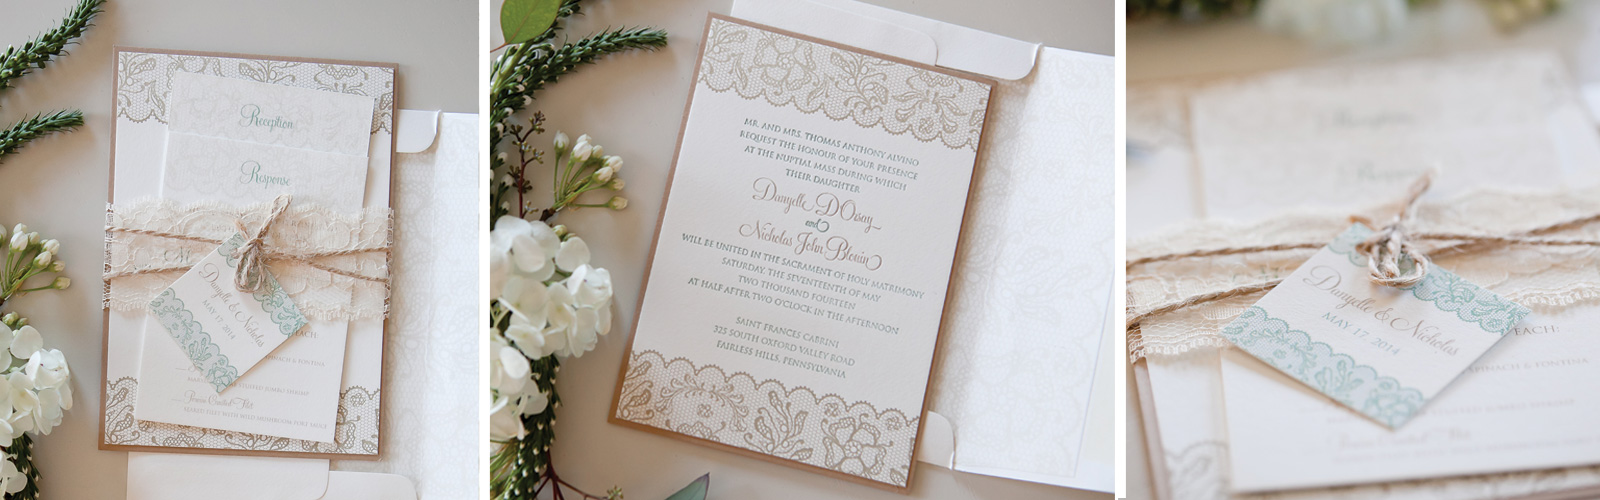 Rustic Lace Letterpress Wedding Invitations Talamore